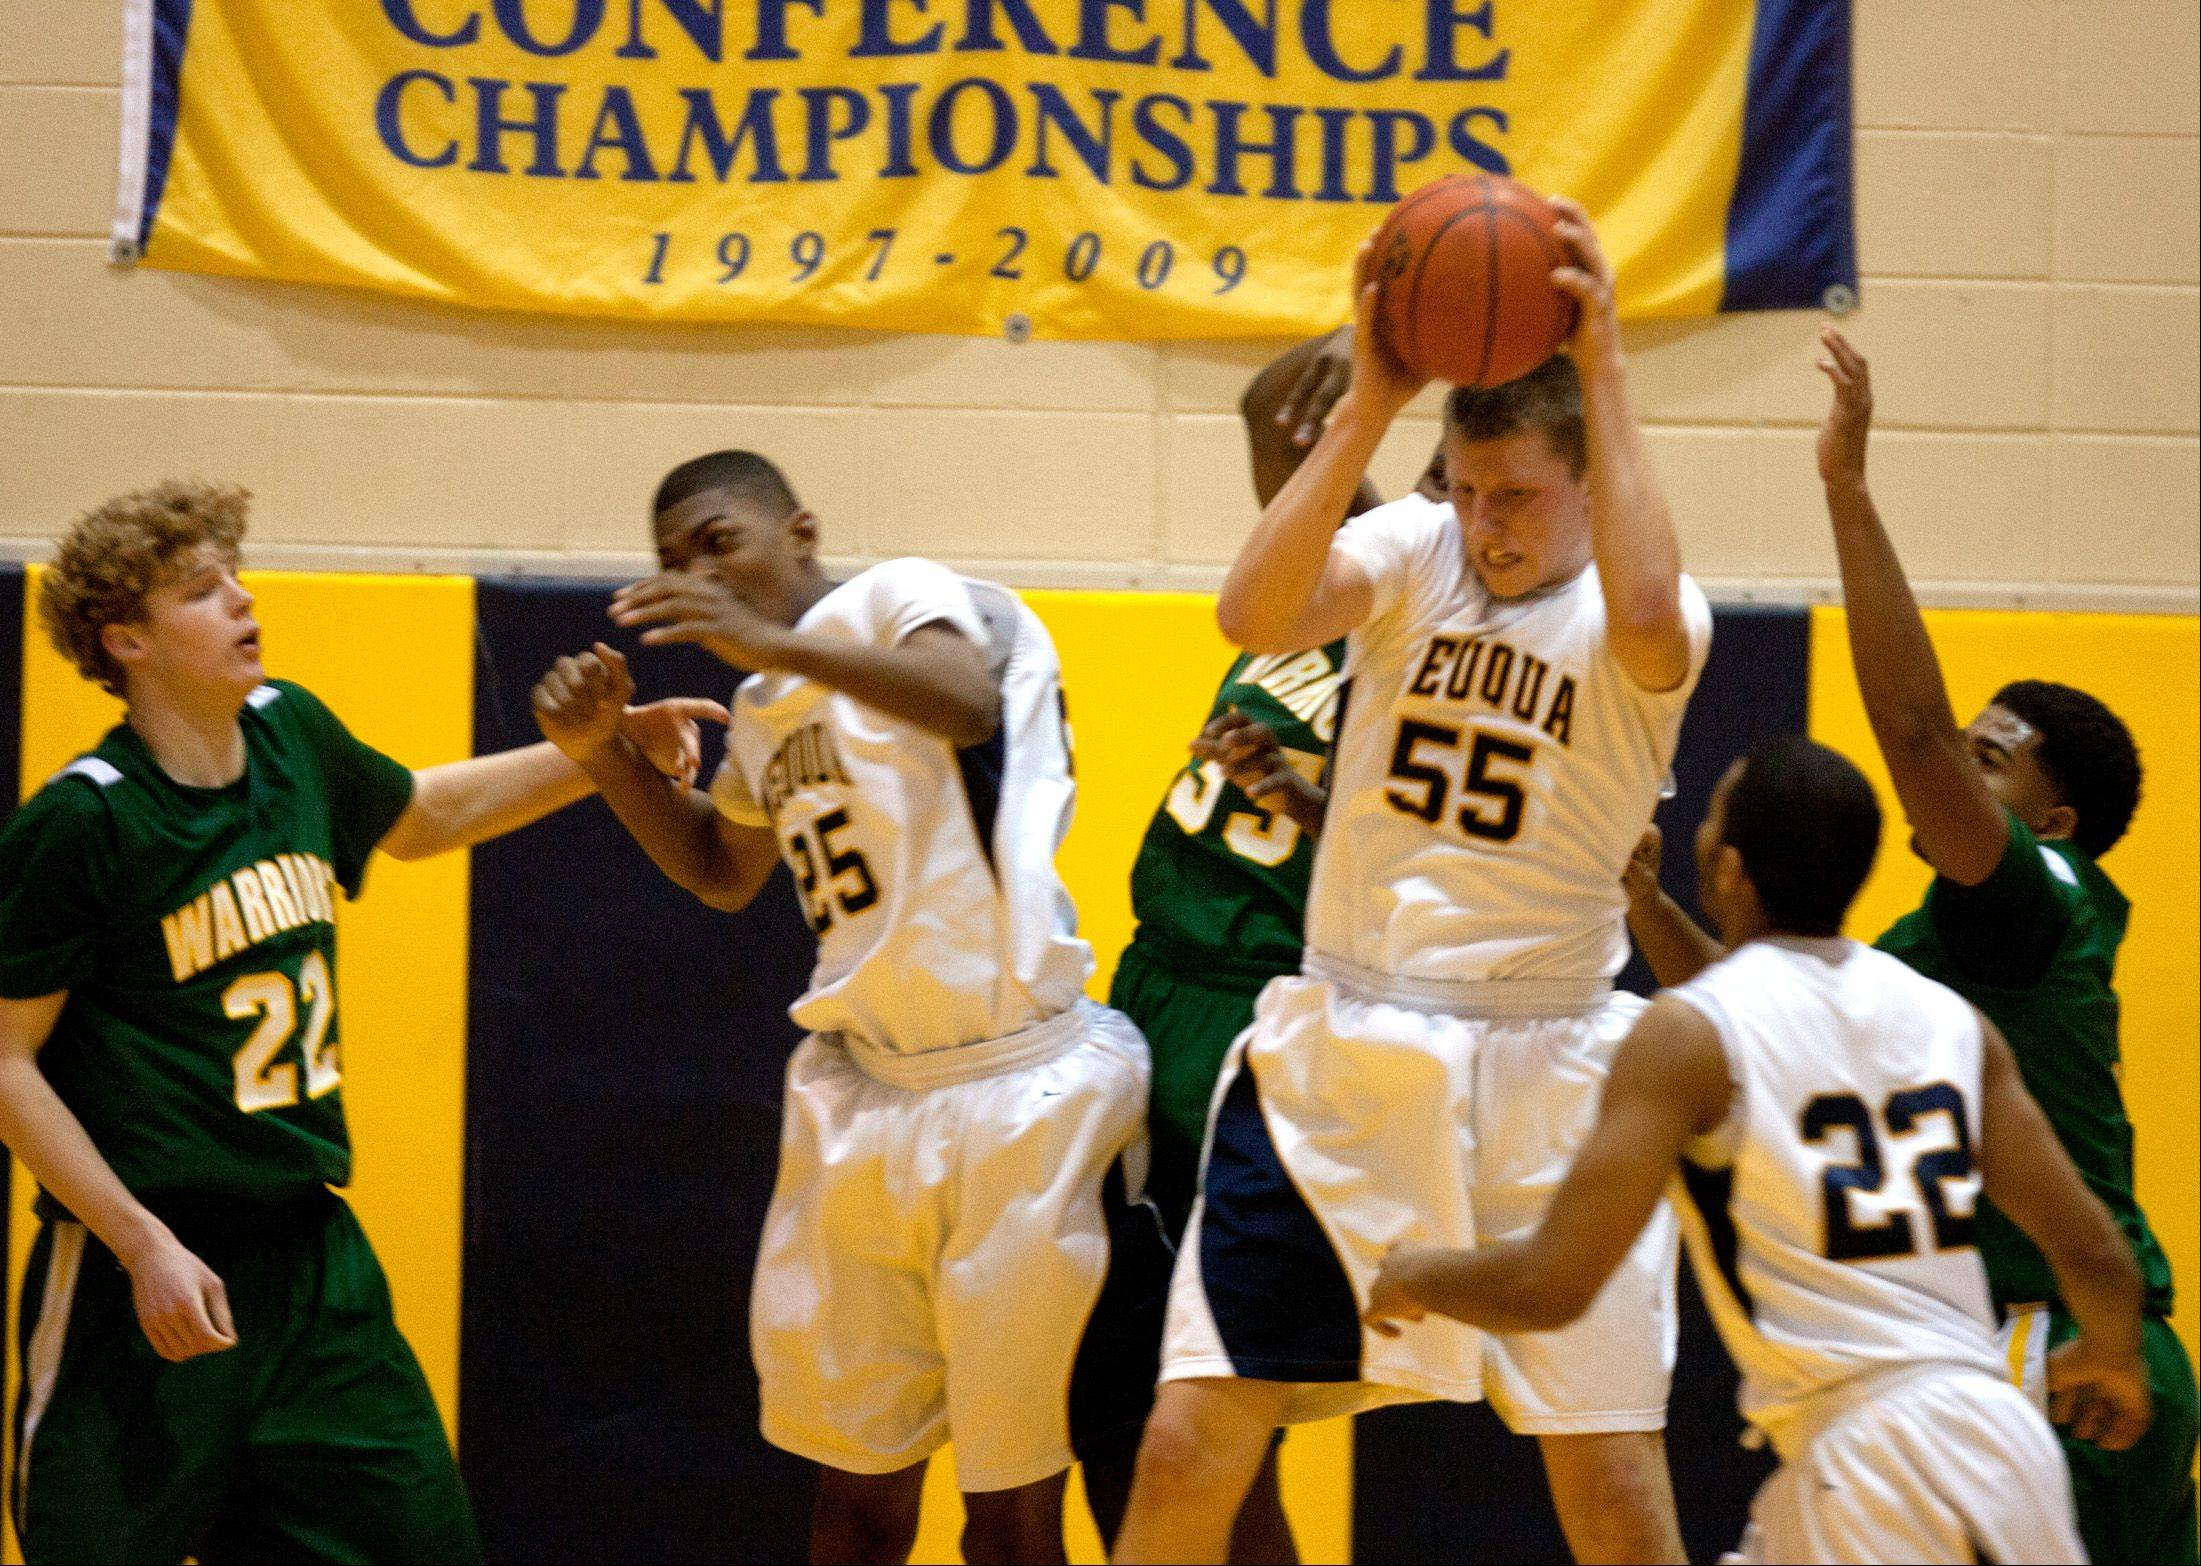 Neuqua Valley's Pat Kenny (55), gathers a rebound against Waubonsie Valley during boy's basketball action in Naperville.